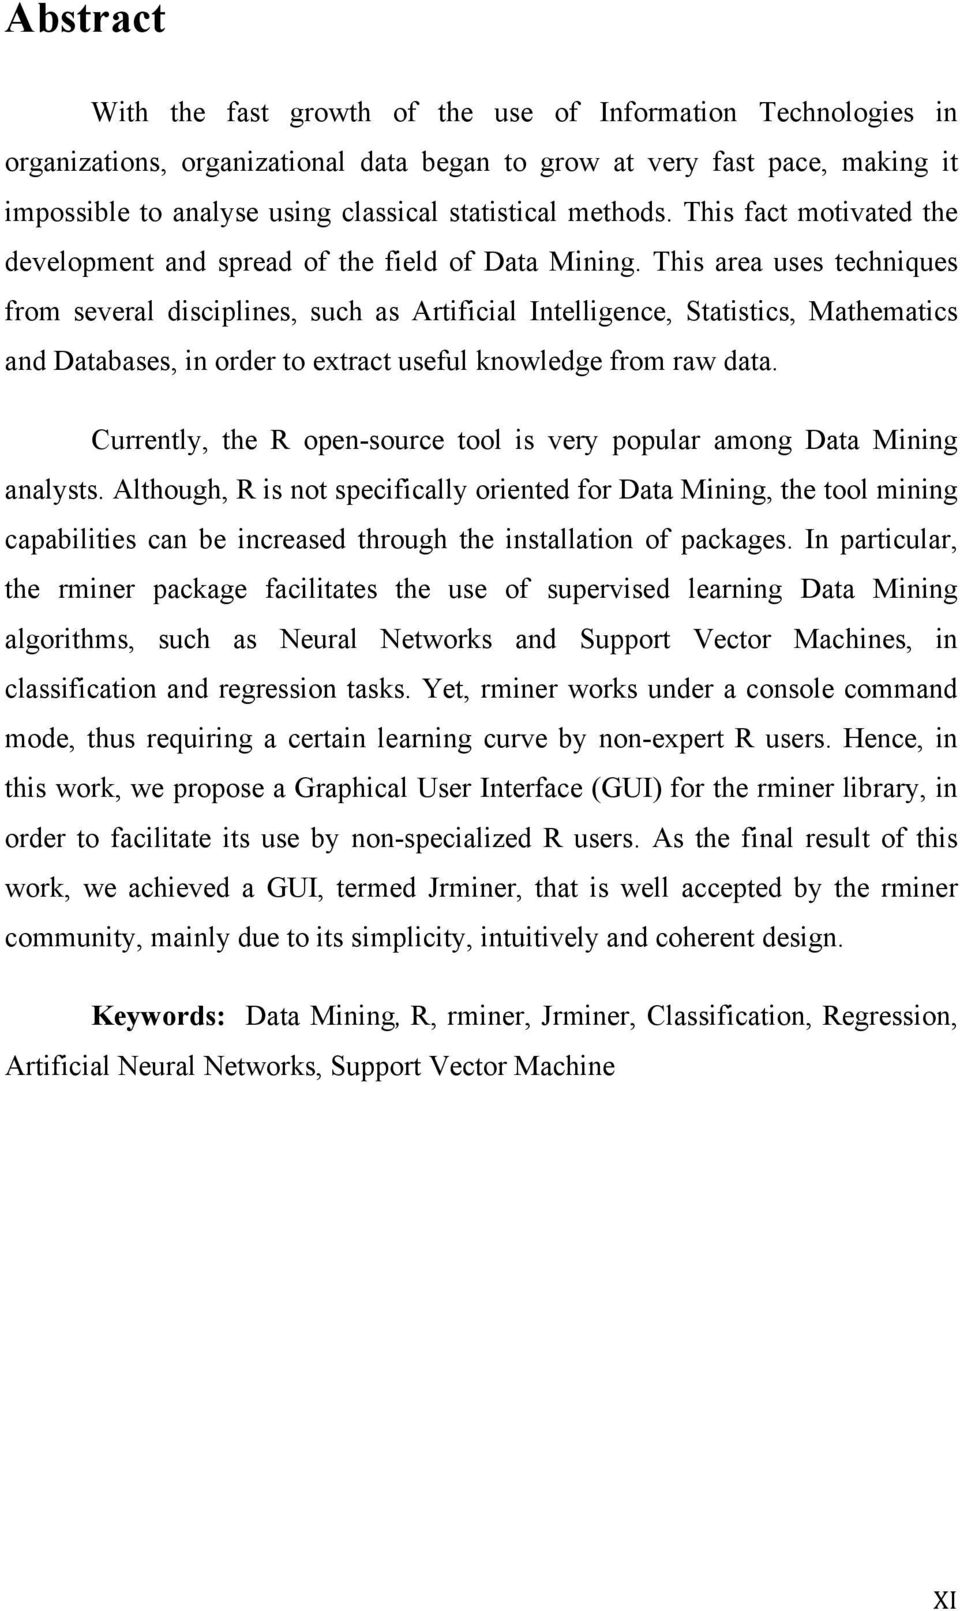 This area uses techniques from several disciplines, such as Artificial Intelligence, Statistics, Mathematics and Databases, in order to extract useful knowledge from raw data.